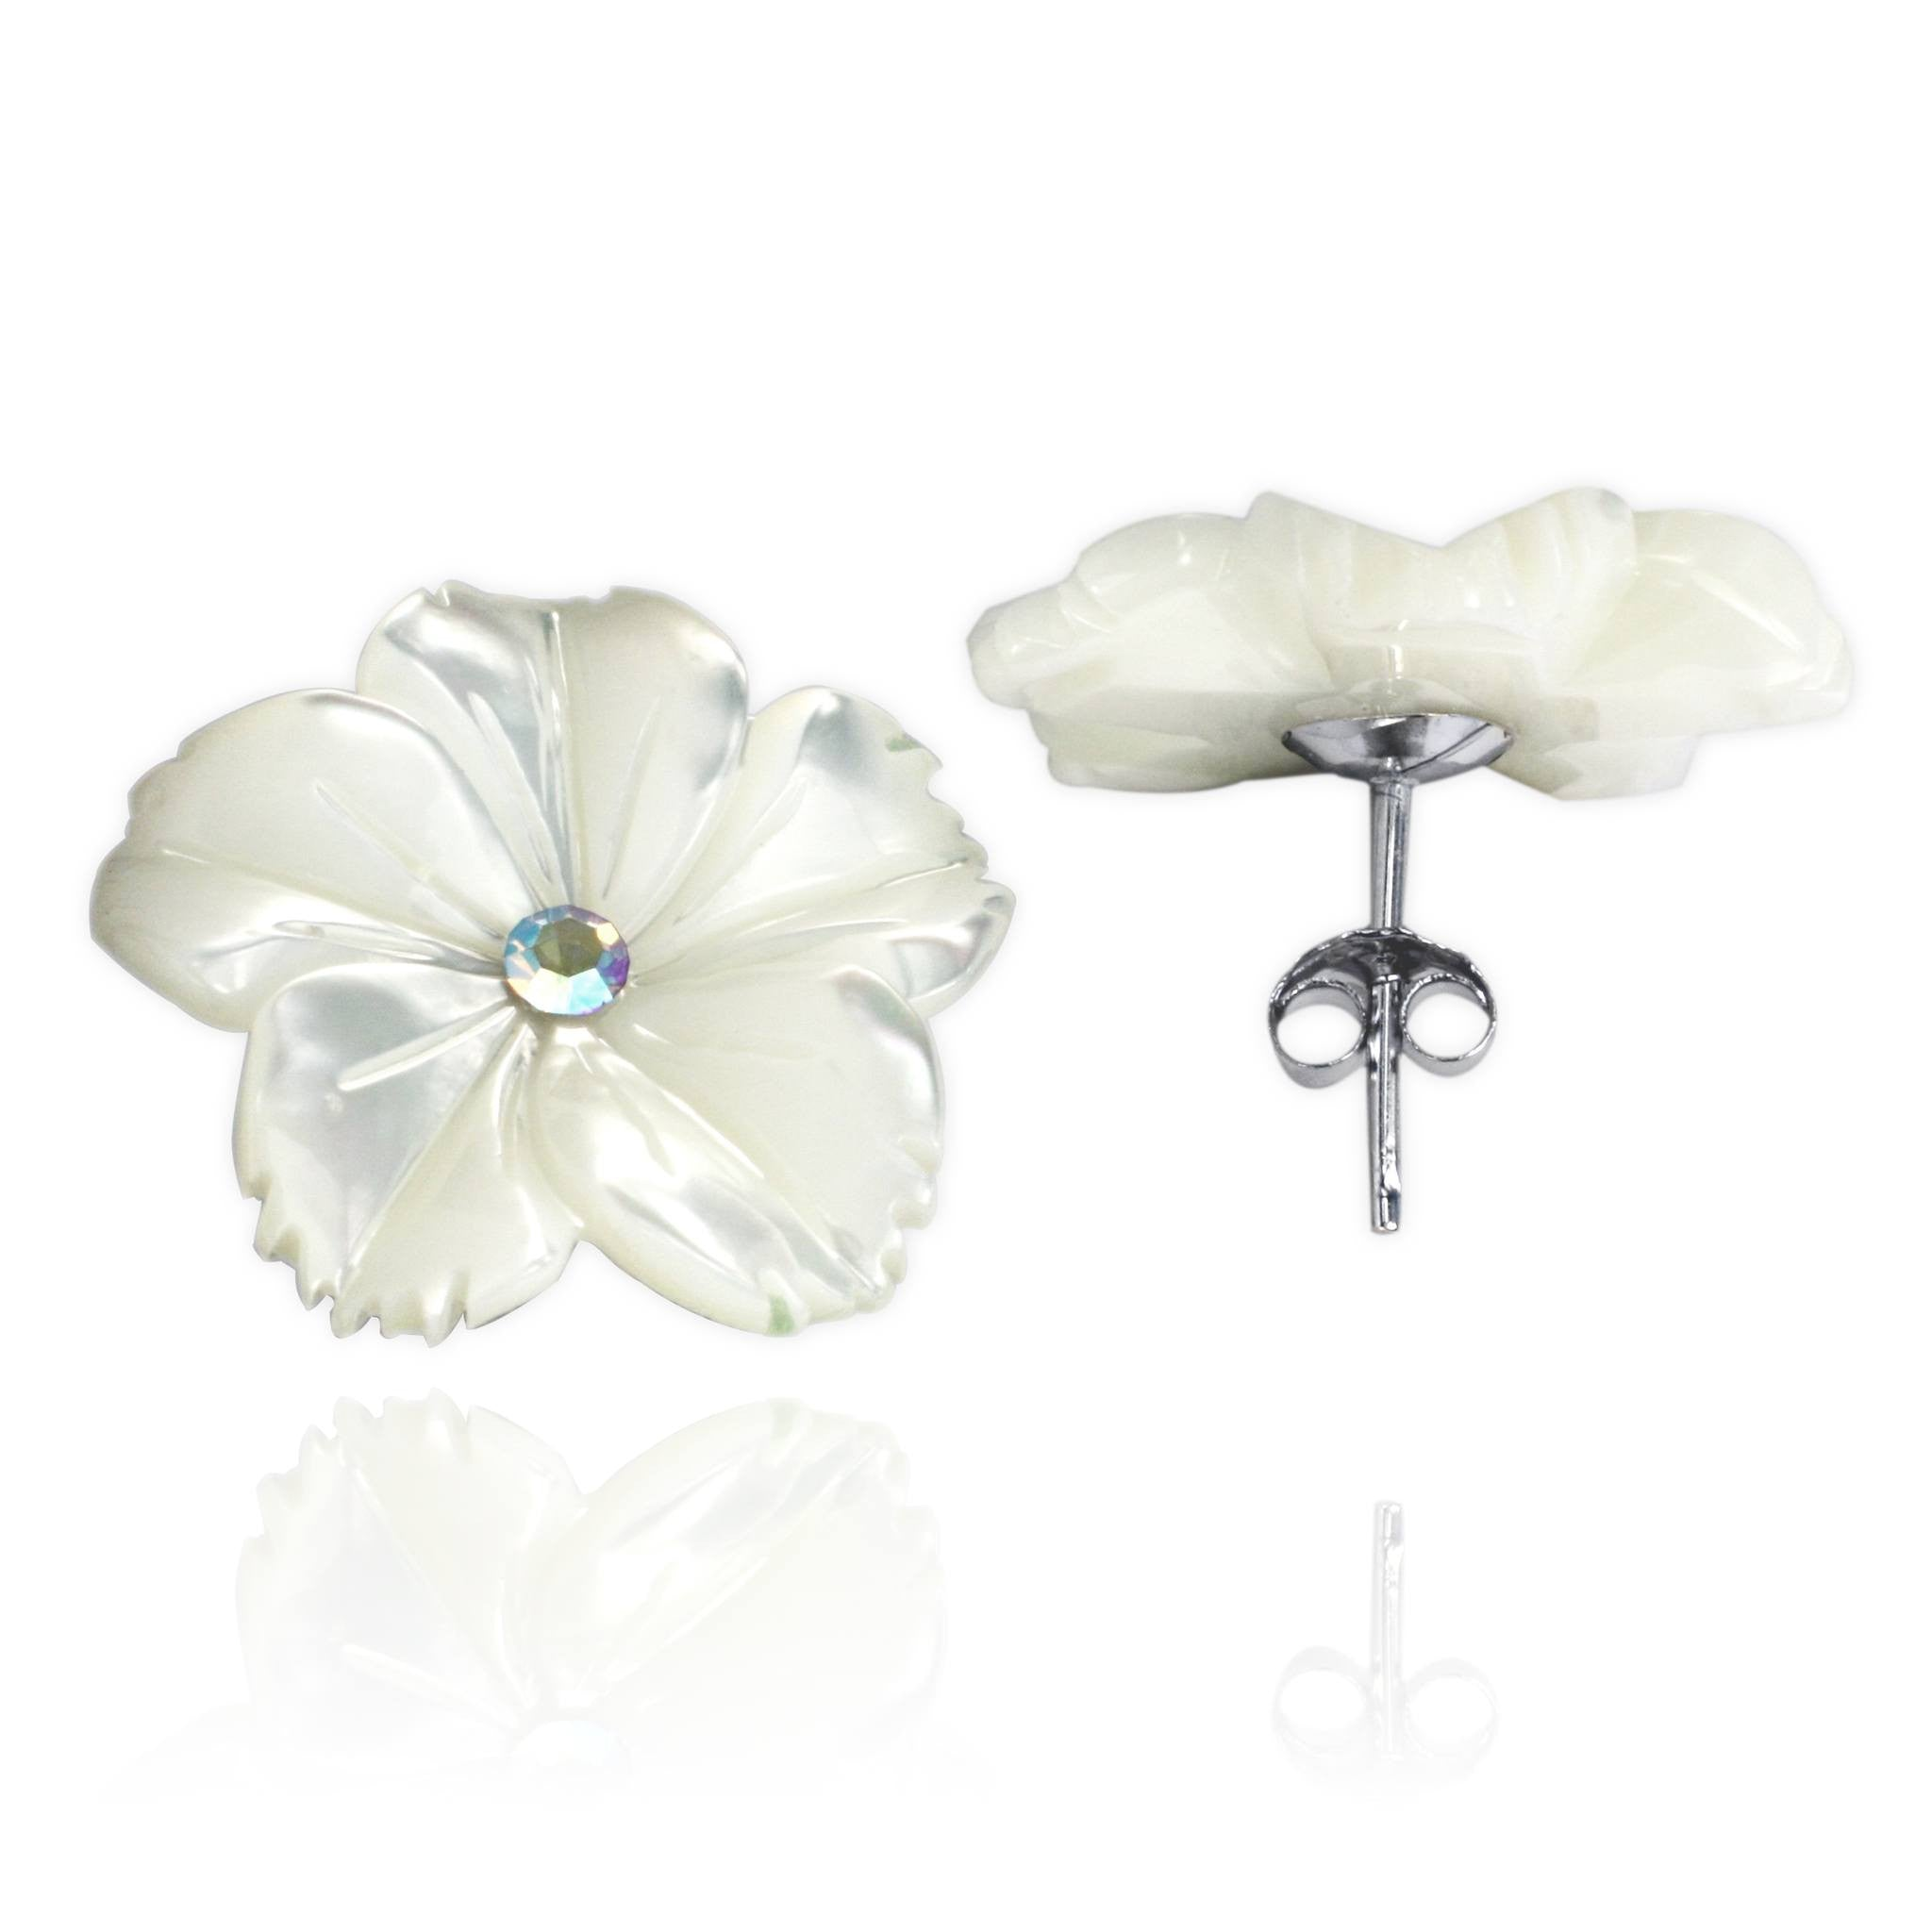 EP-7029 Adenium Stud Earrings | Teeda